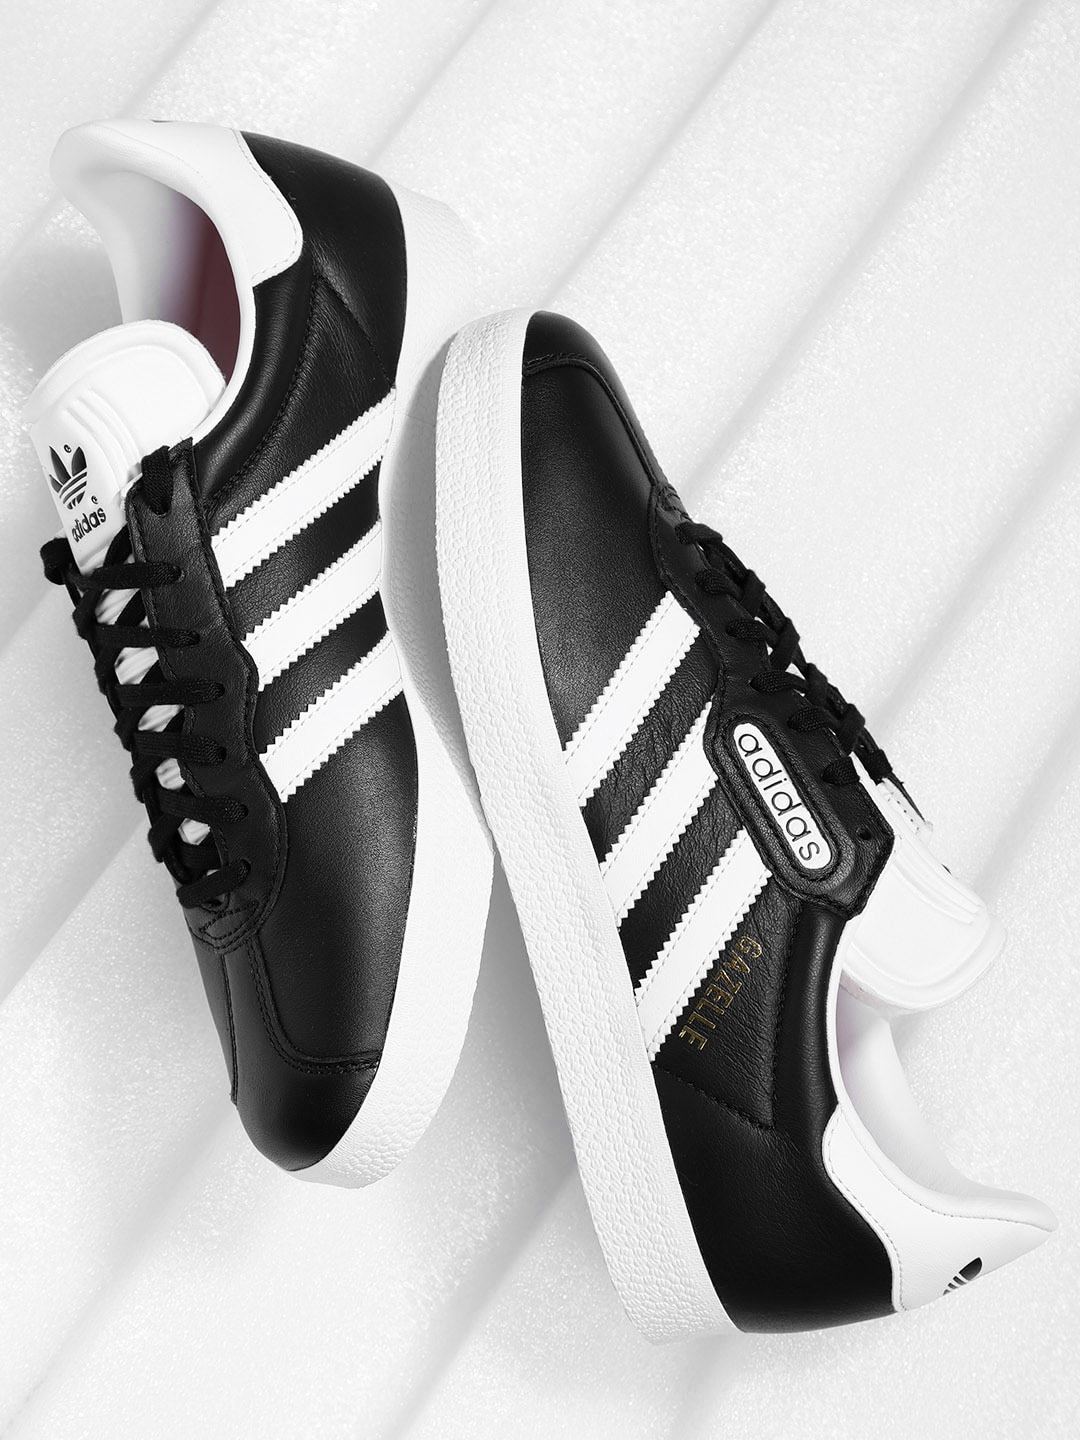 Adidas Shoes Buy For Men Women Online Myntra Offer Second